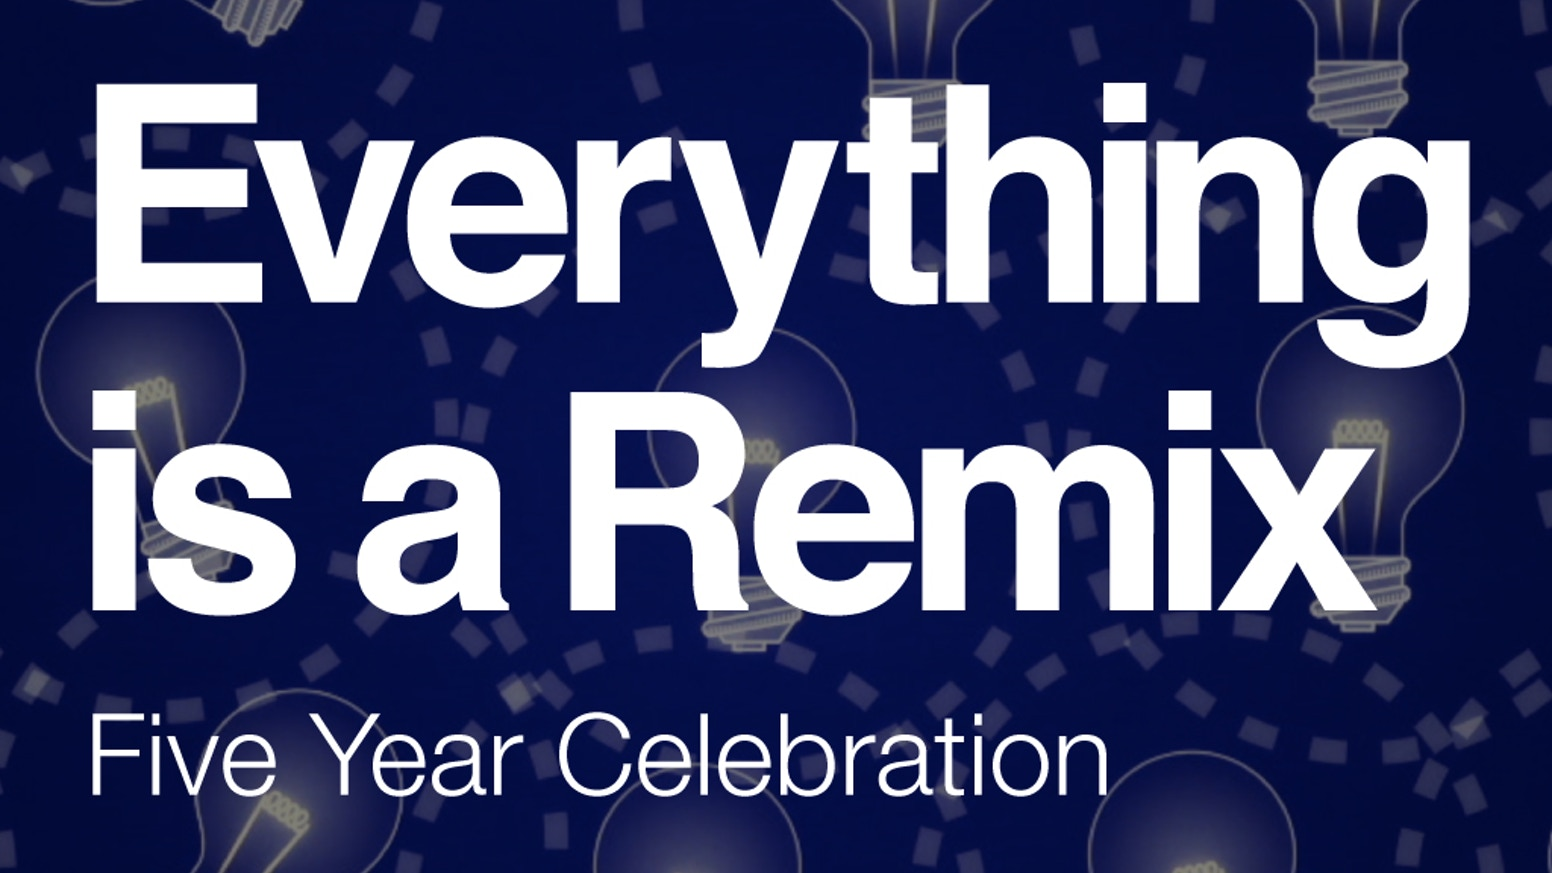 It's been five years since the launch of the popular Everything is a Remix video series. Celebrate by picking up a t-shirt or poster.